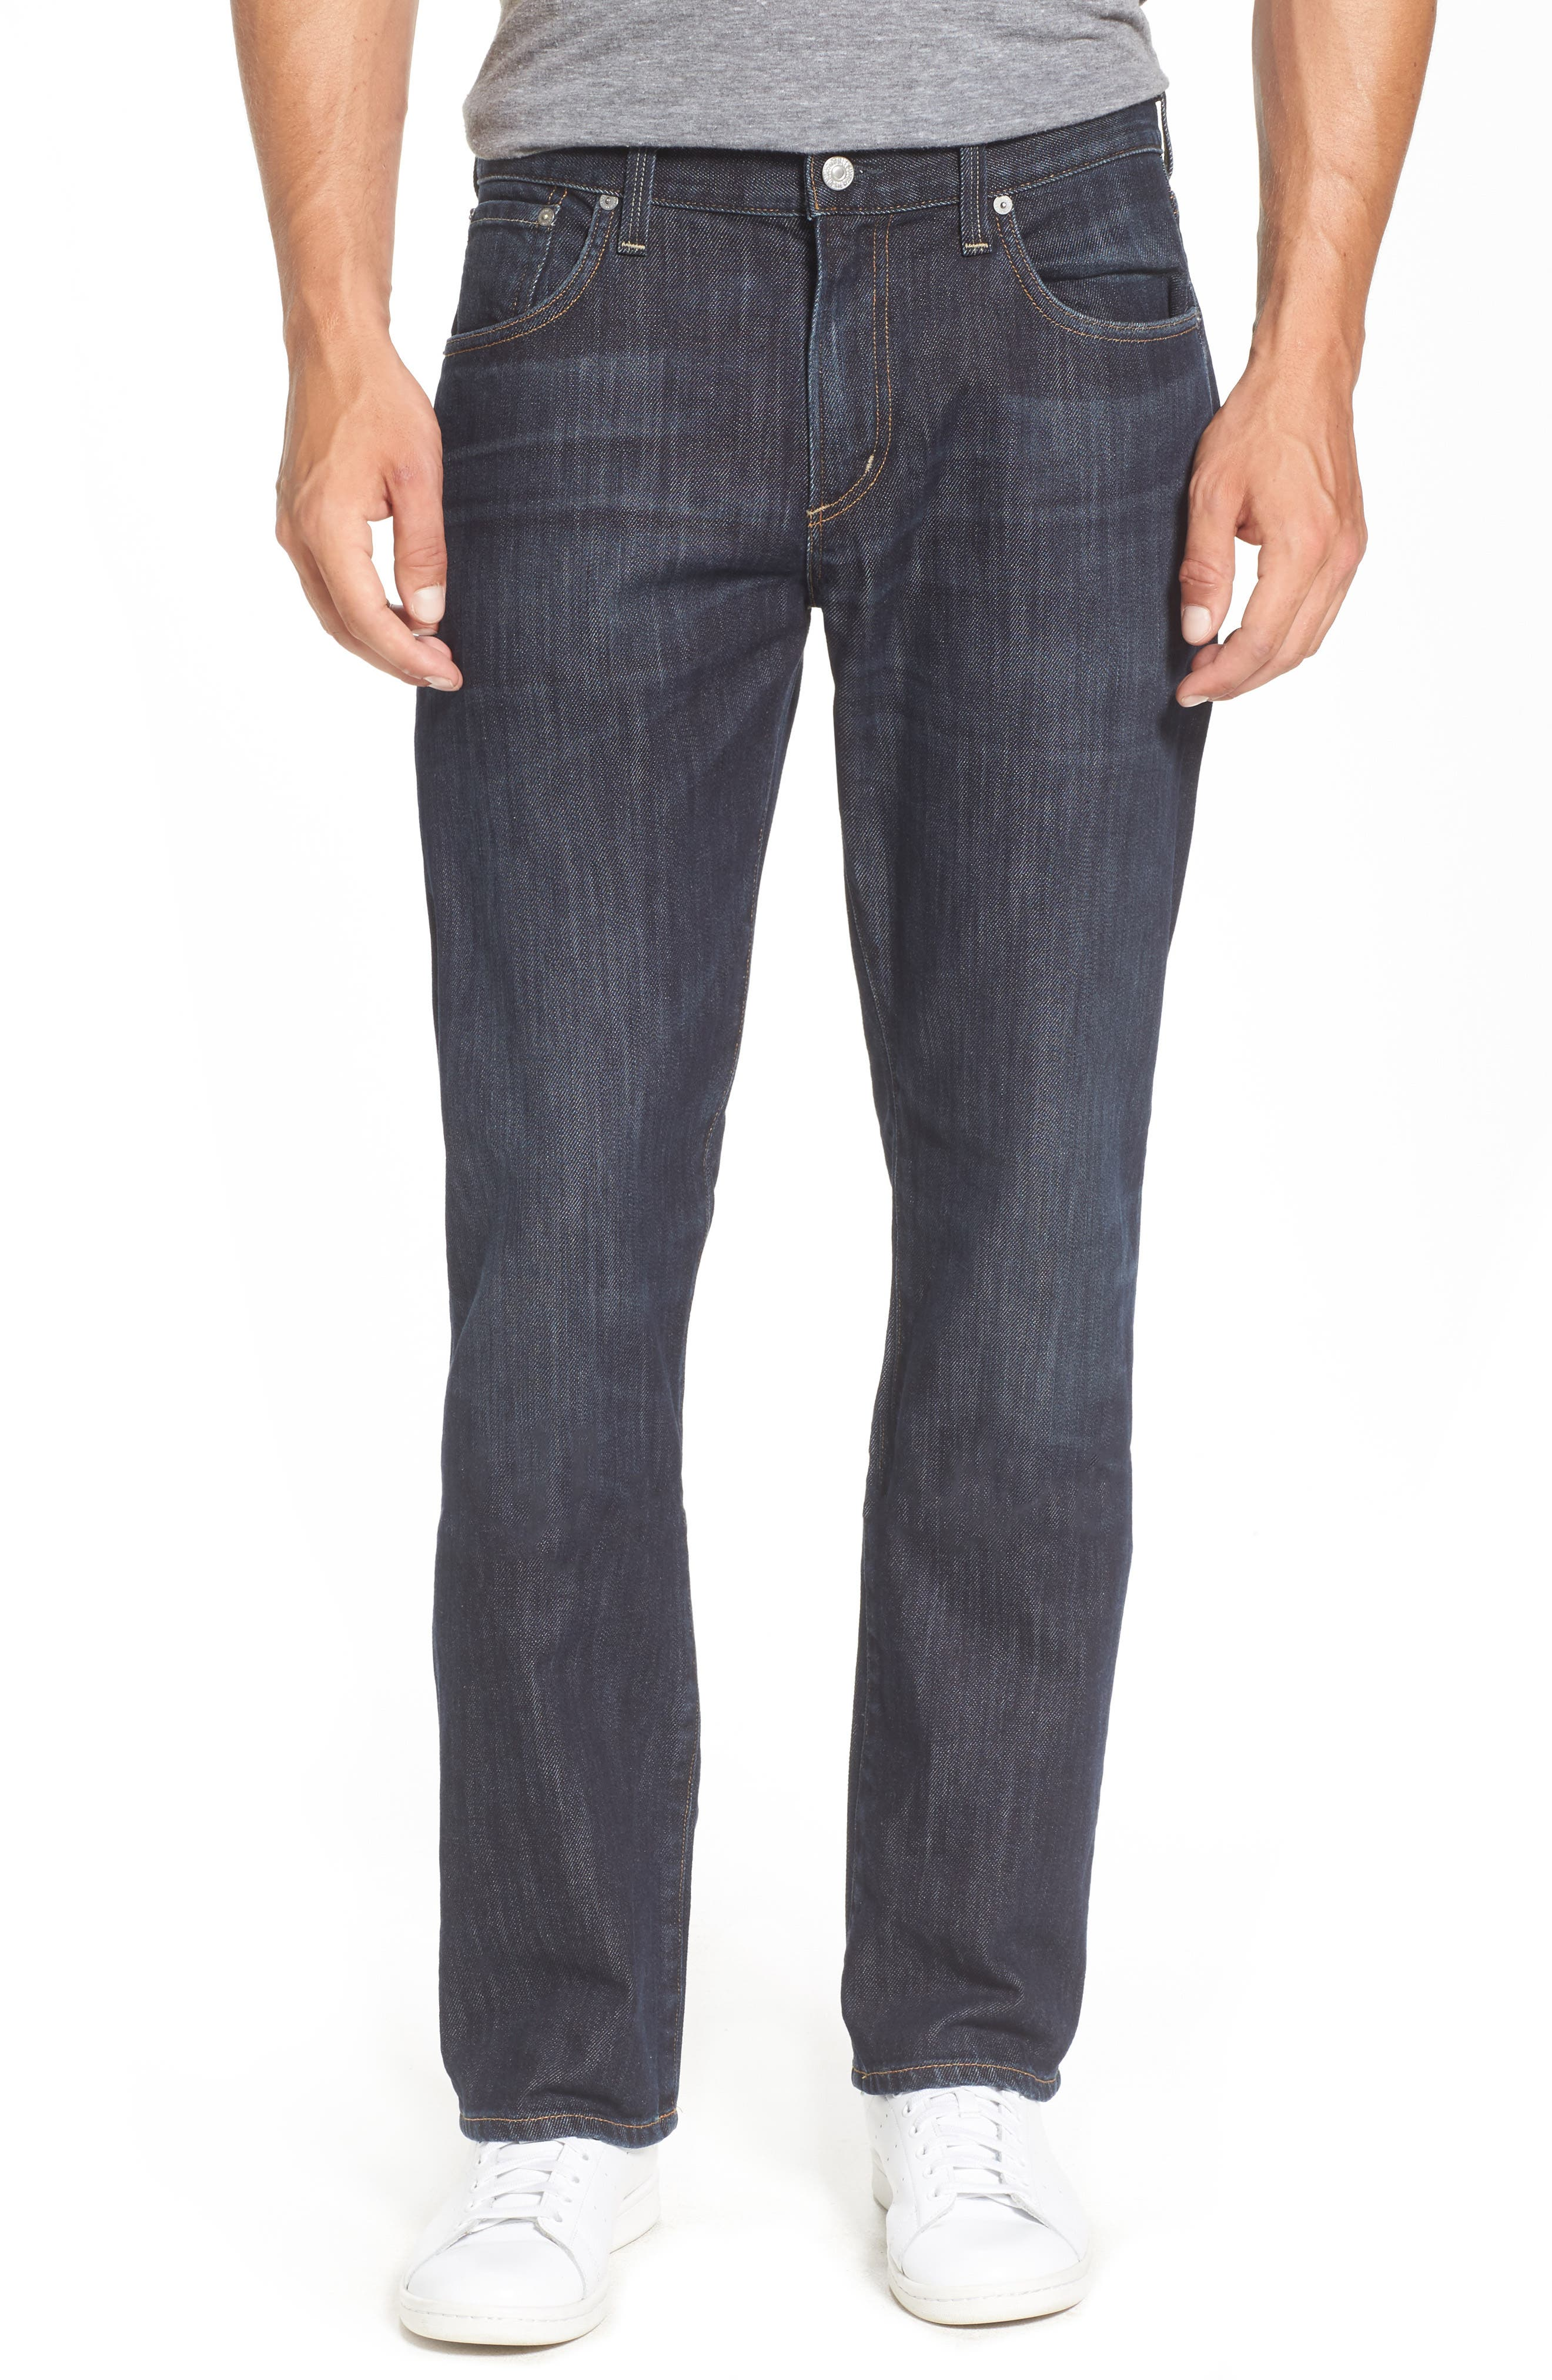 Alternate Image 1 Selected - Citizens of Humanity Perfect Relaxed Straight Leg Jeans (Hanover)